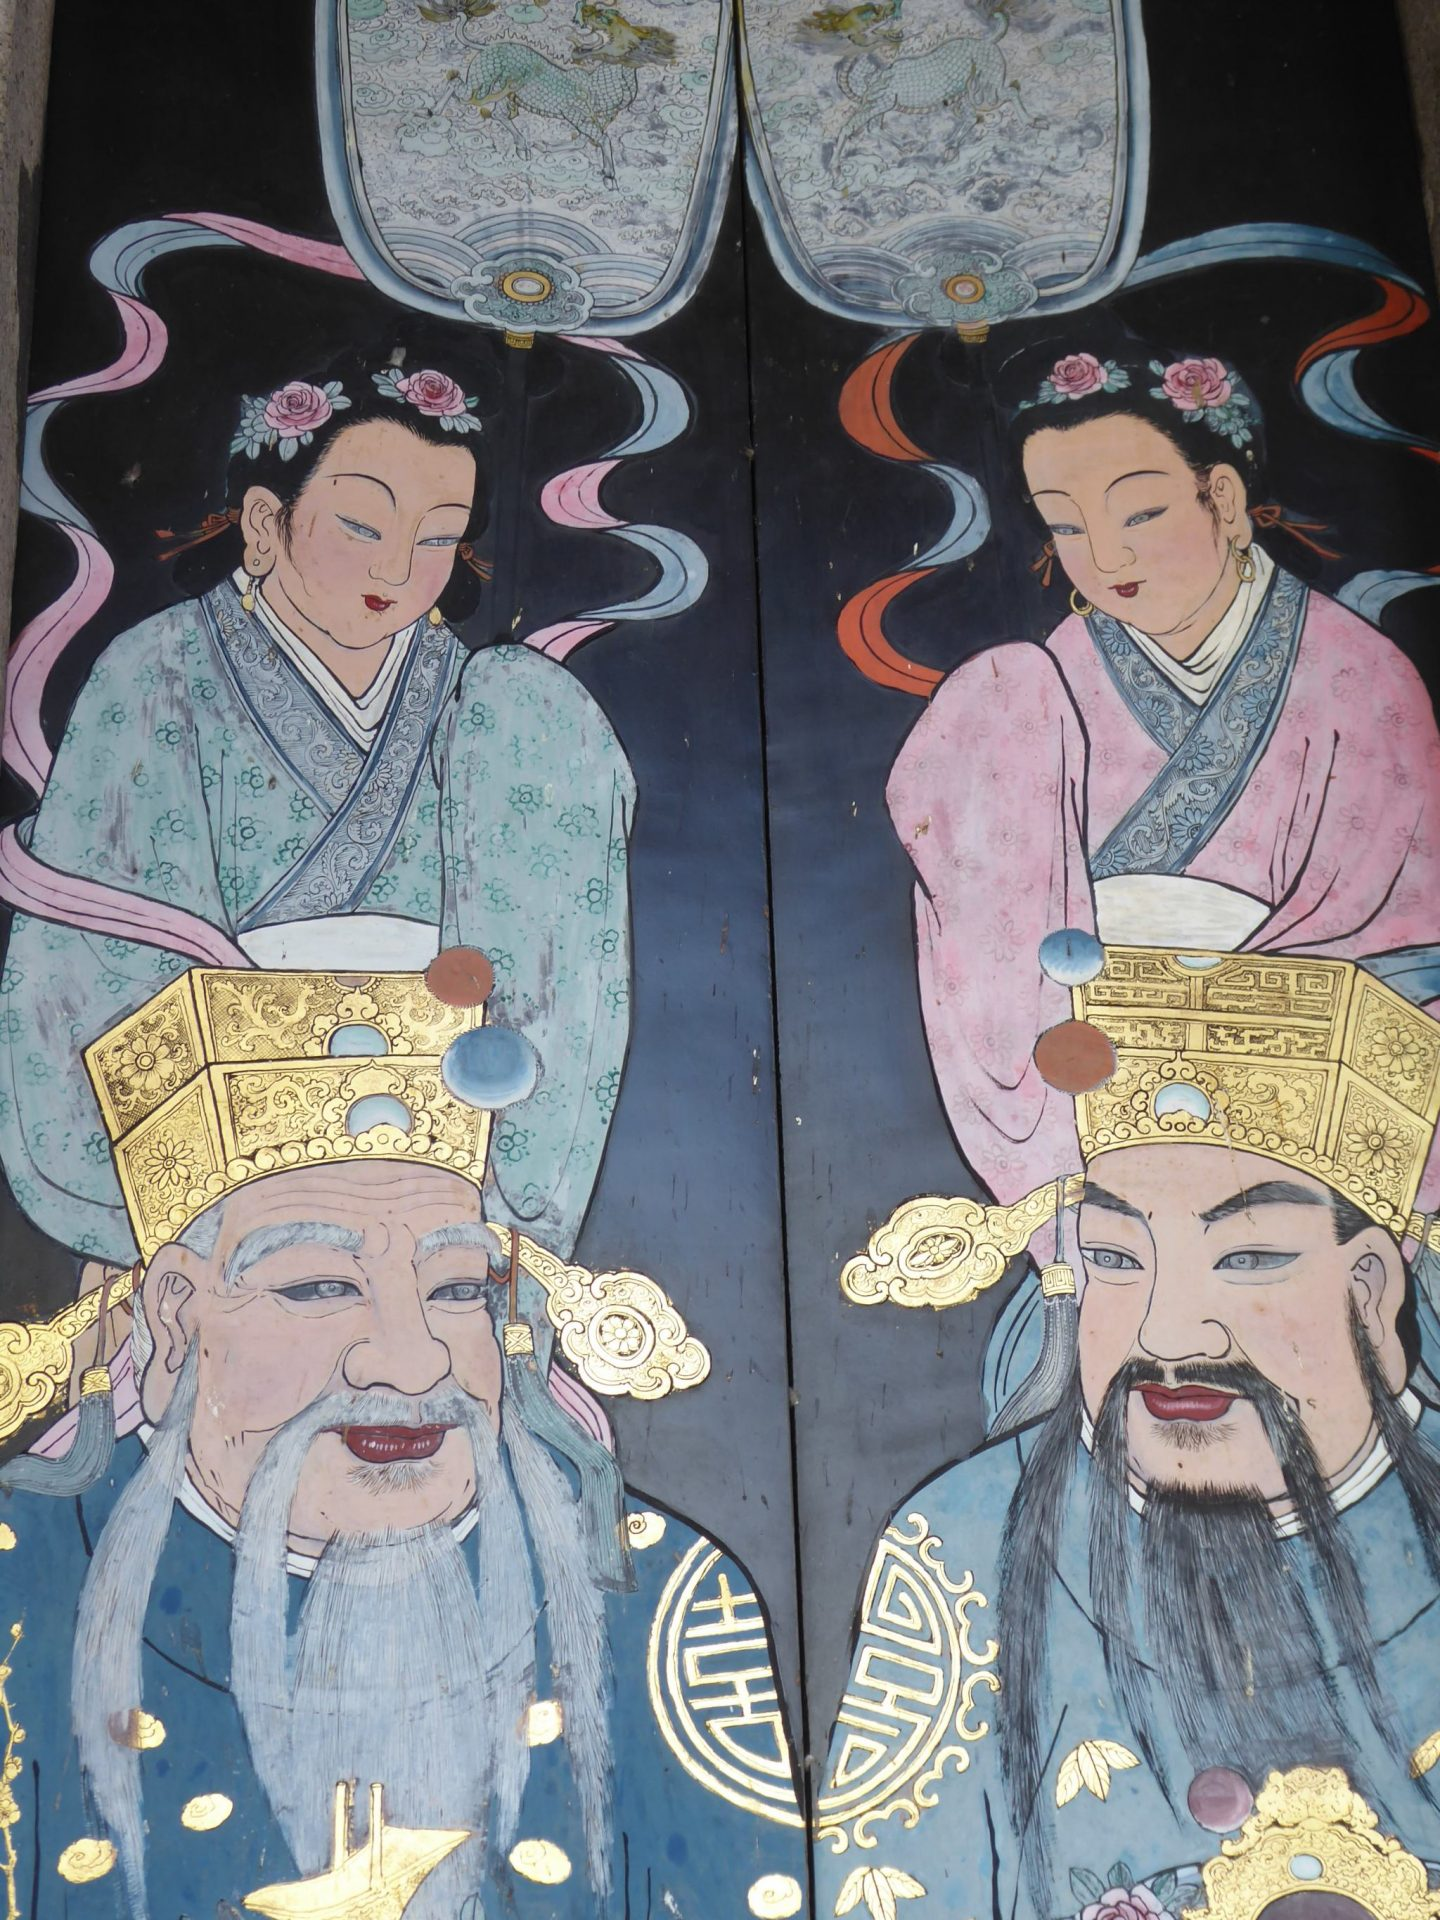 Illustrations at the Penang Teochew Association temple - 2 men and 2 women in traditional Chinese dress on a dark background - the women are situated behind the men with decorations above them- Penang Travel Guide